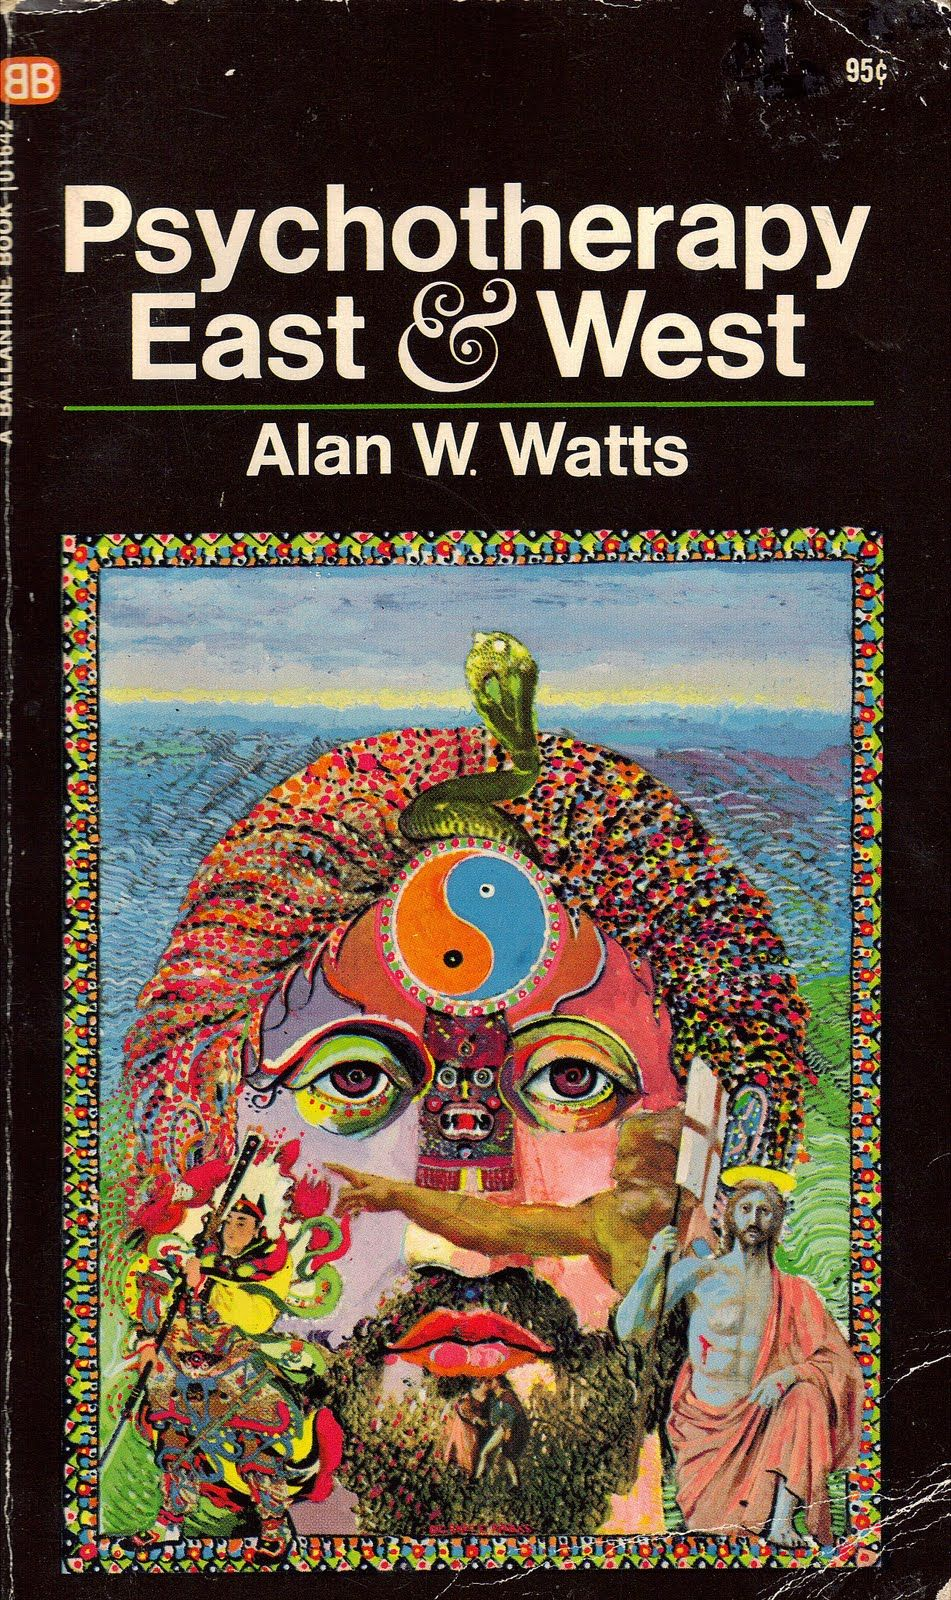 Alan Watts Libros Alan W Watts Psychotherapy East West Books Libros